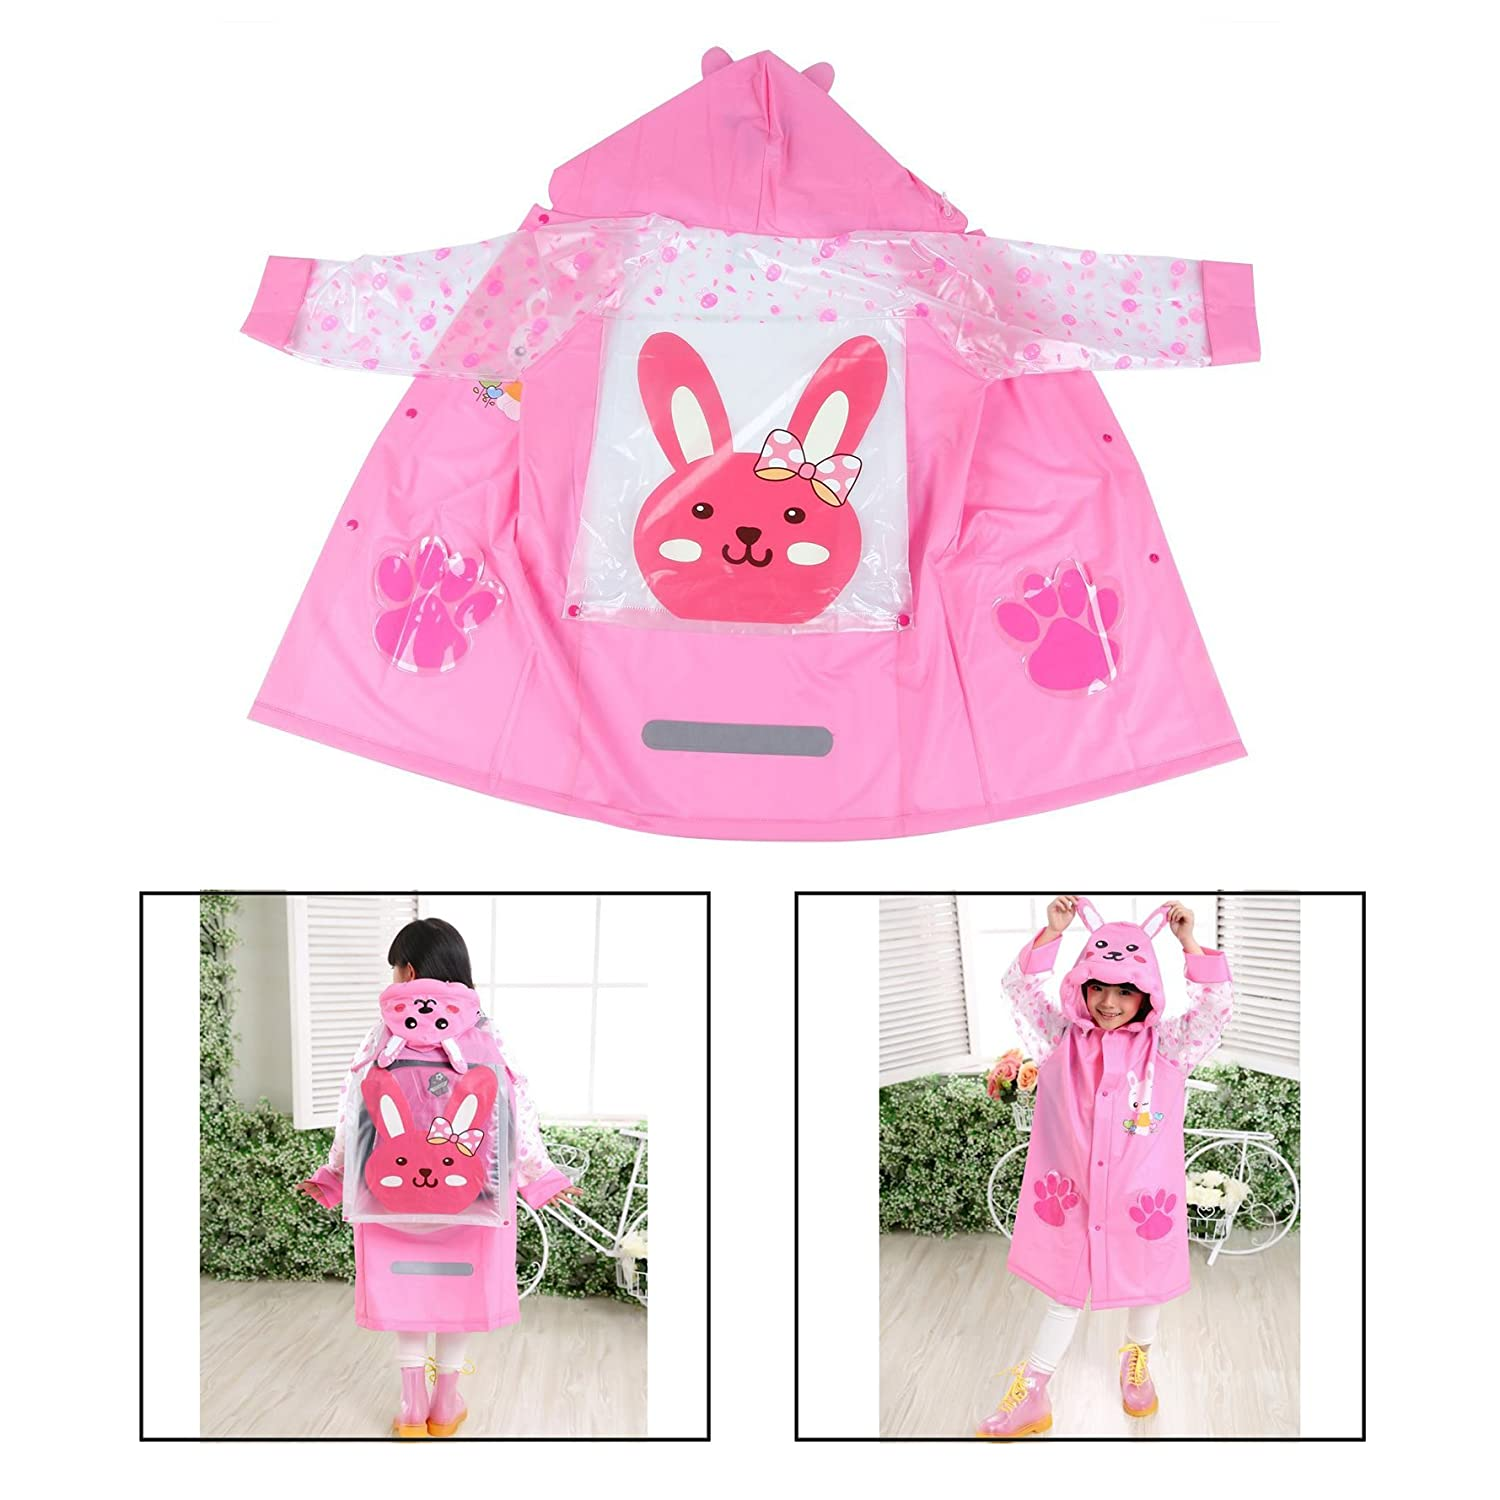 Itian Pink Cartoon Waterproof Hooded Raincoat Jacke Suit 4-10 Years Children for Outdoor Camping Cycling